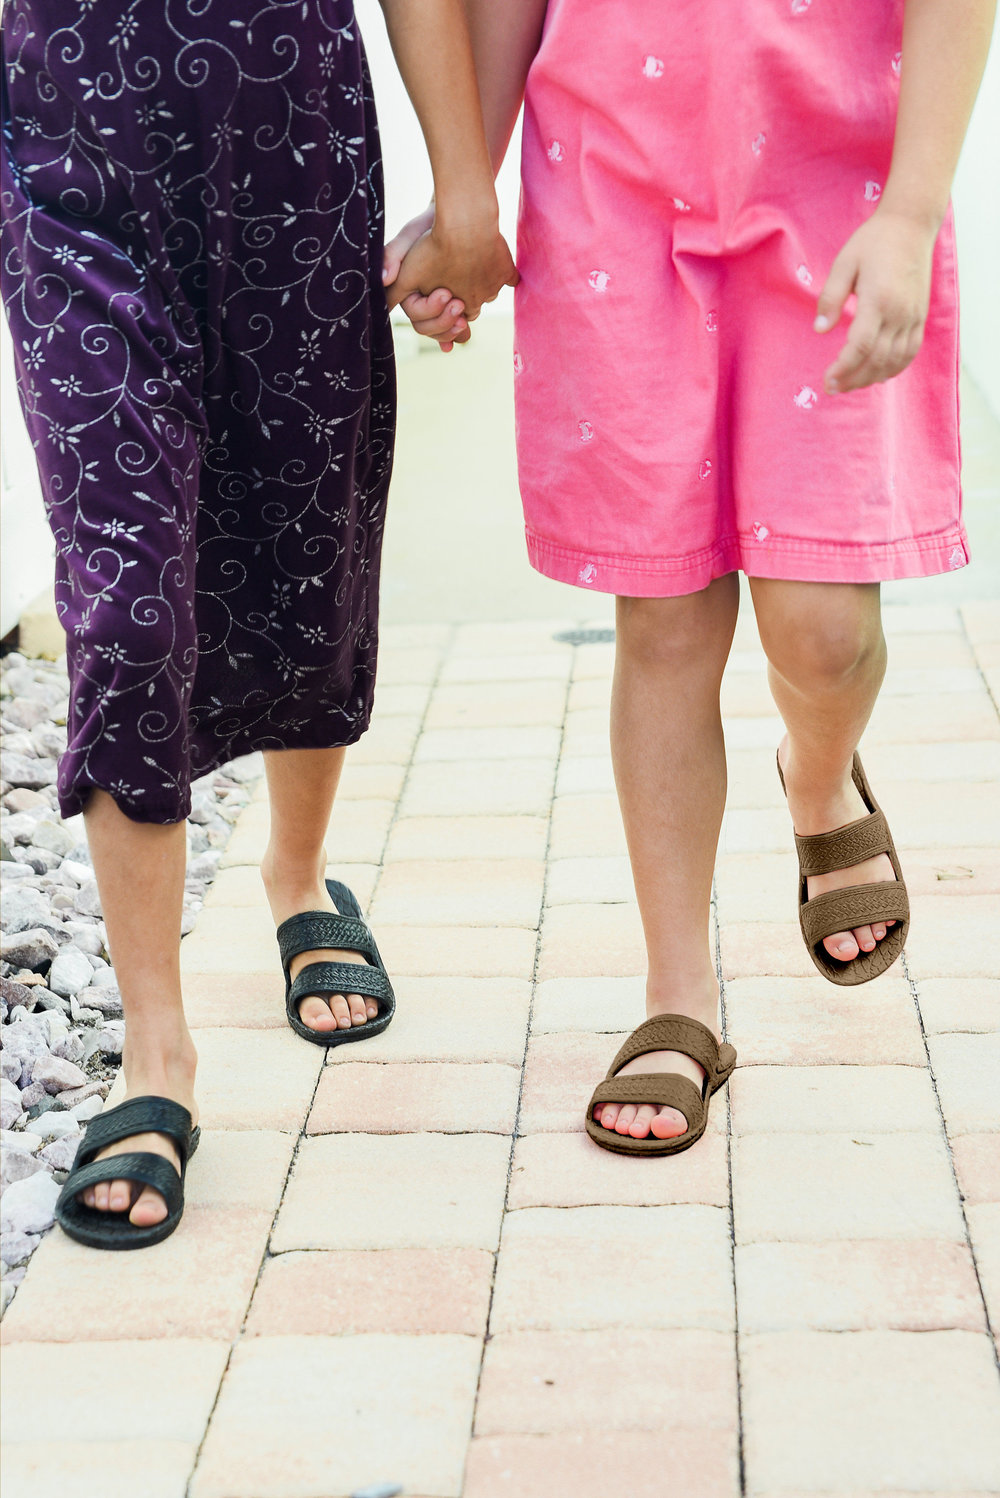 Pali Hawaii   Kids Jandal ®  in Black and Brown.